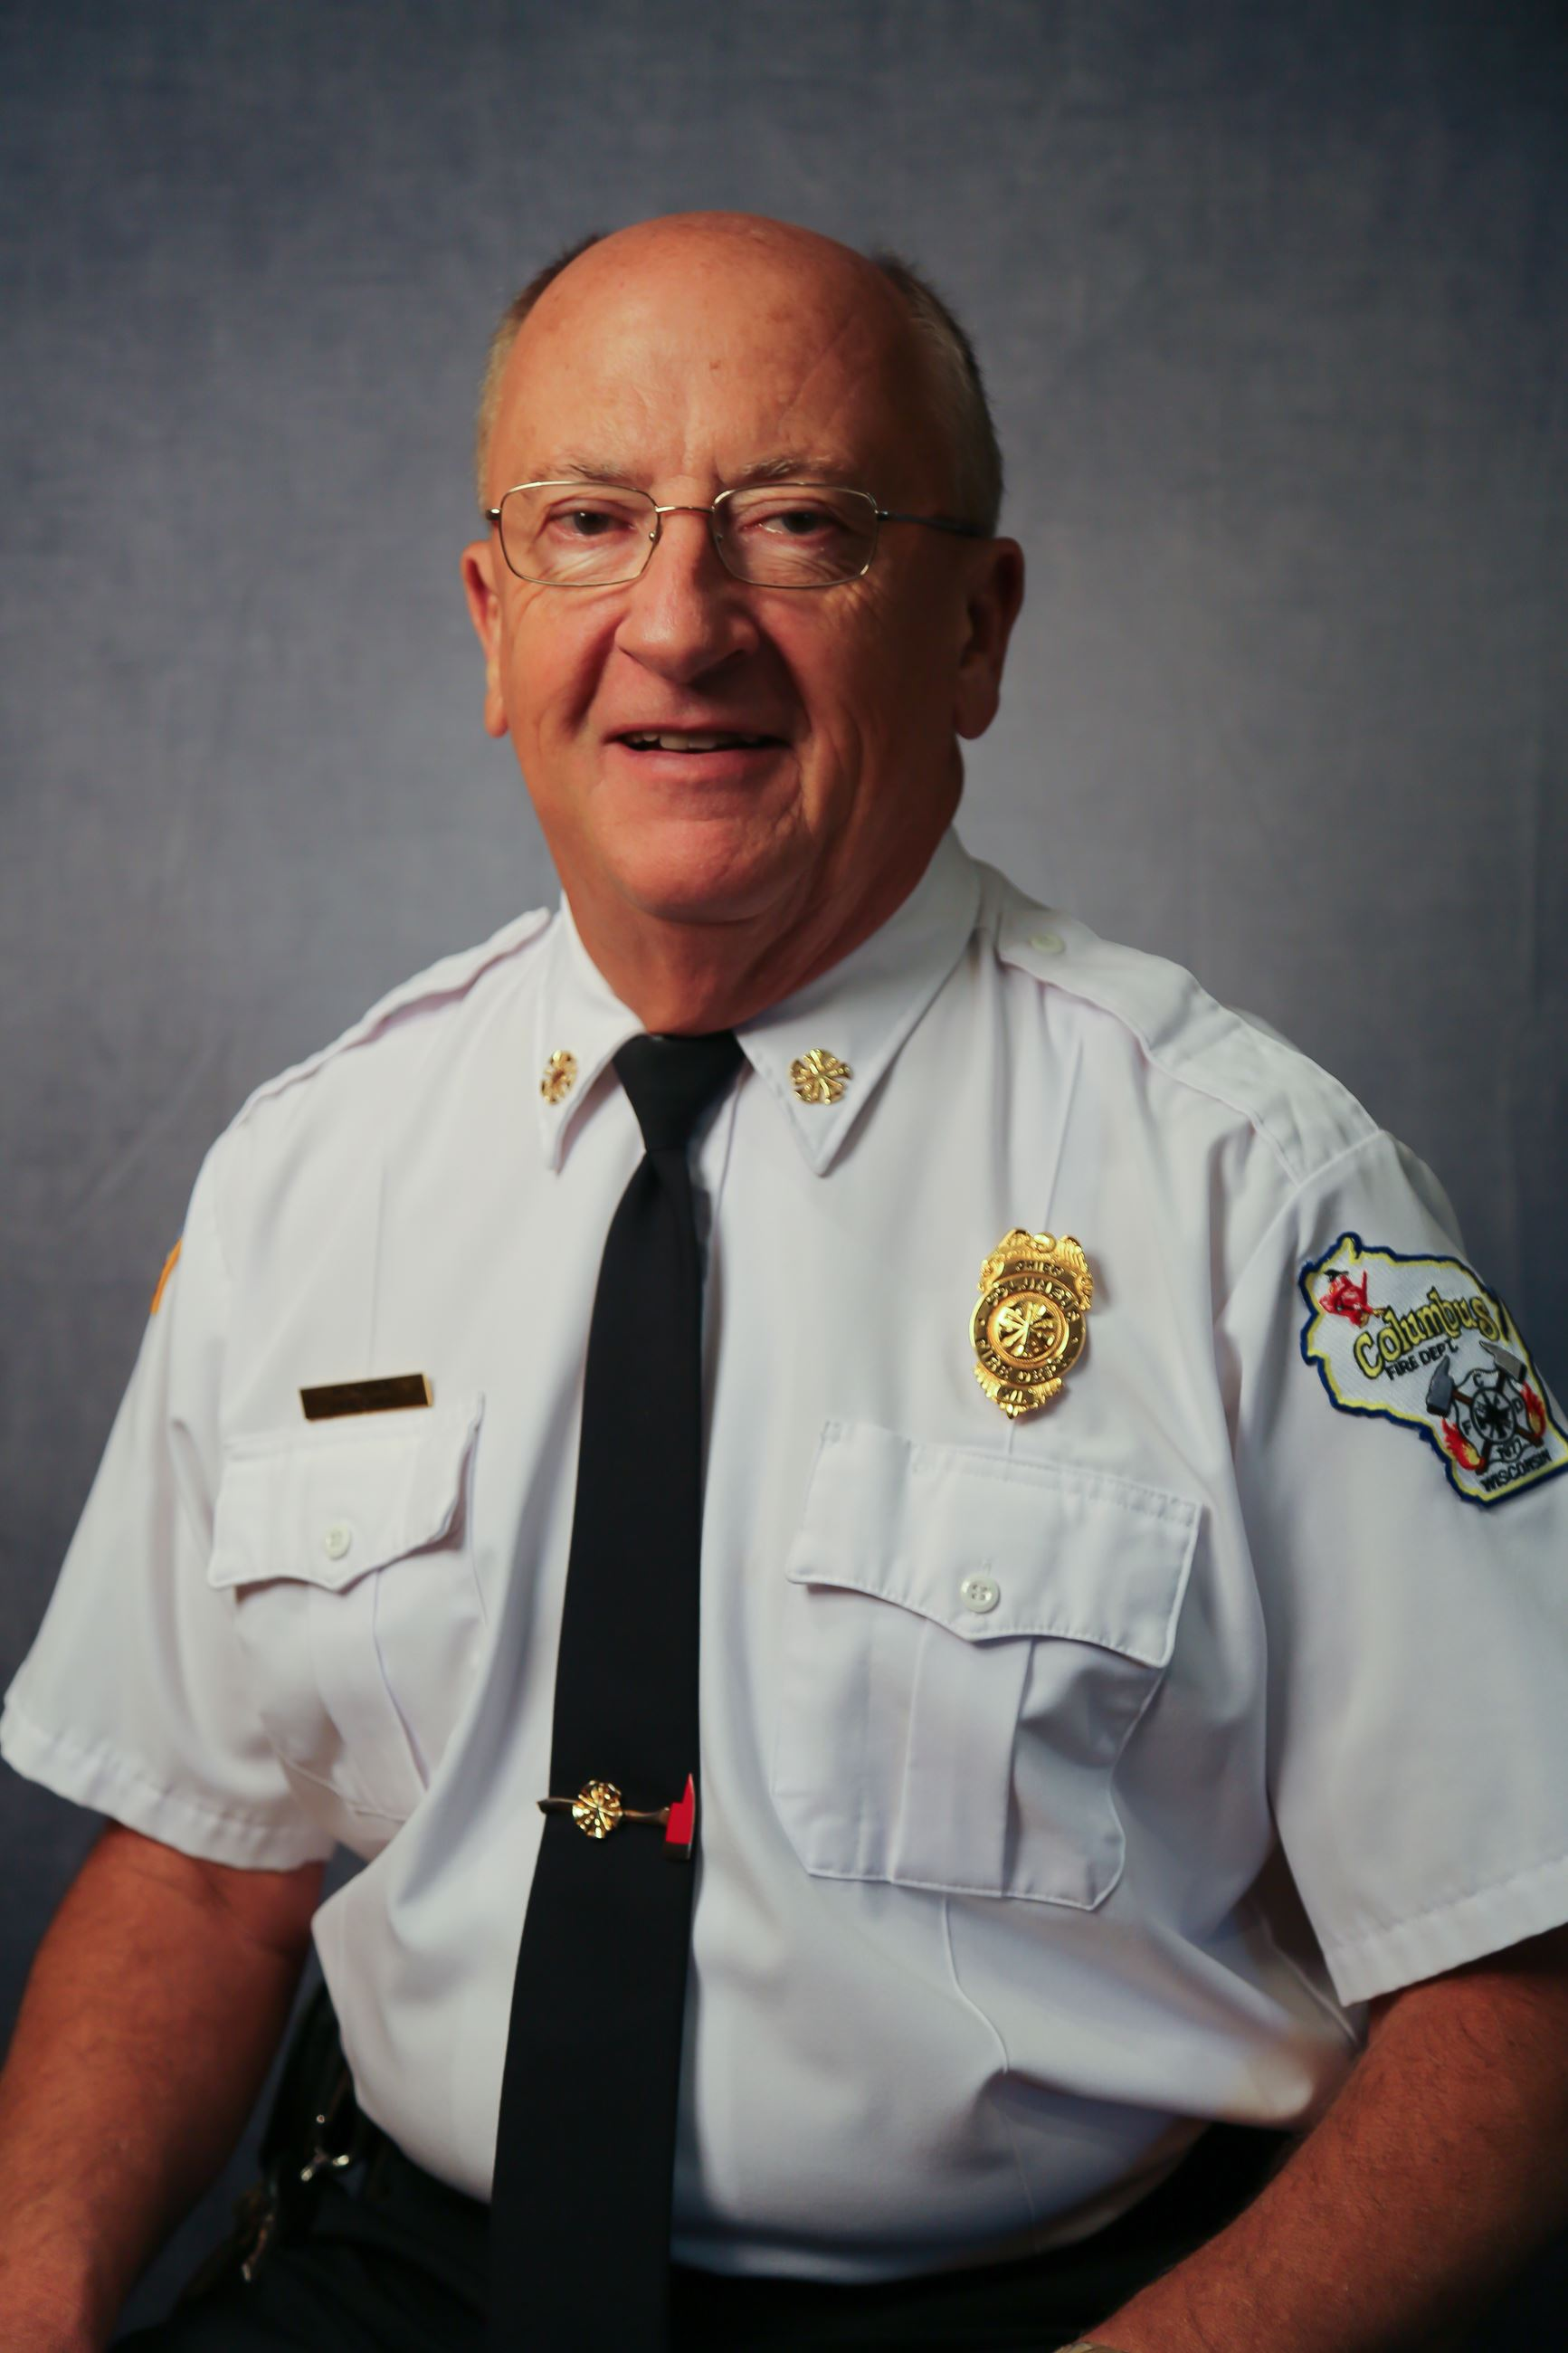 Fire Chief Randy Koehn